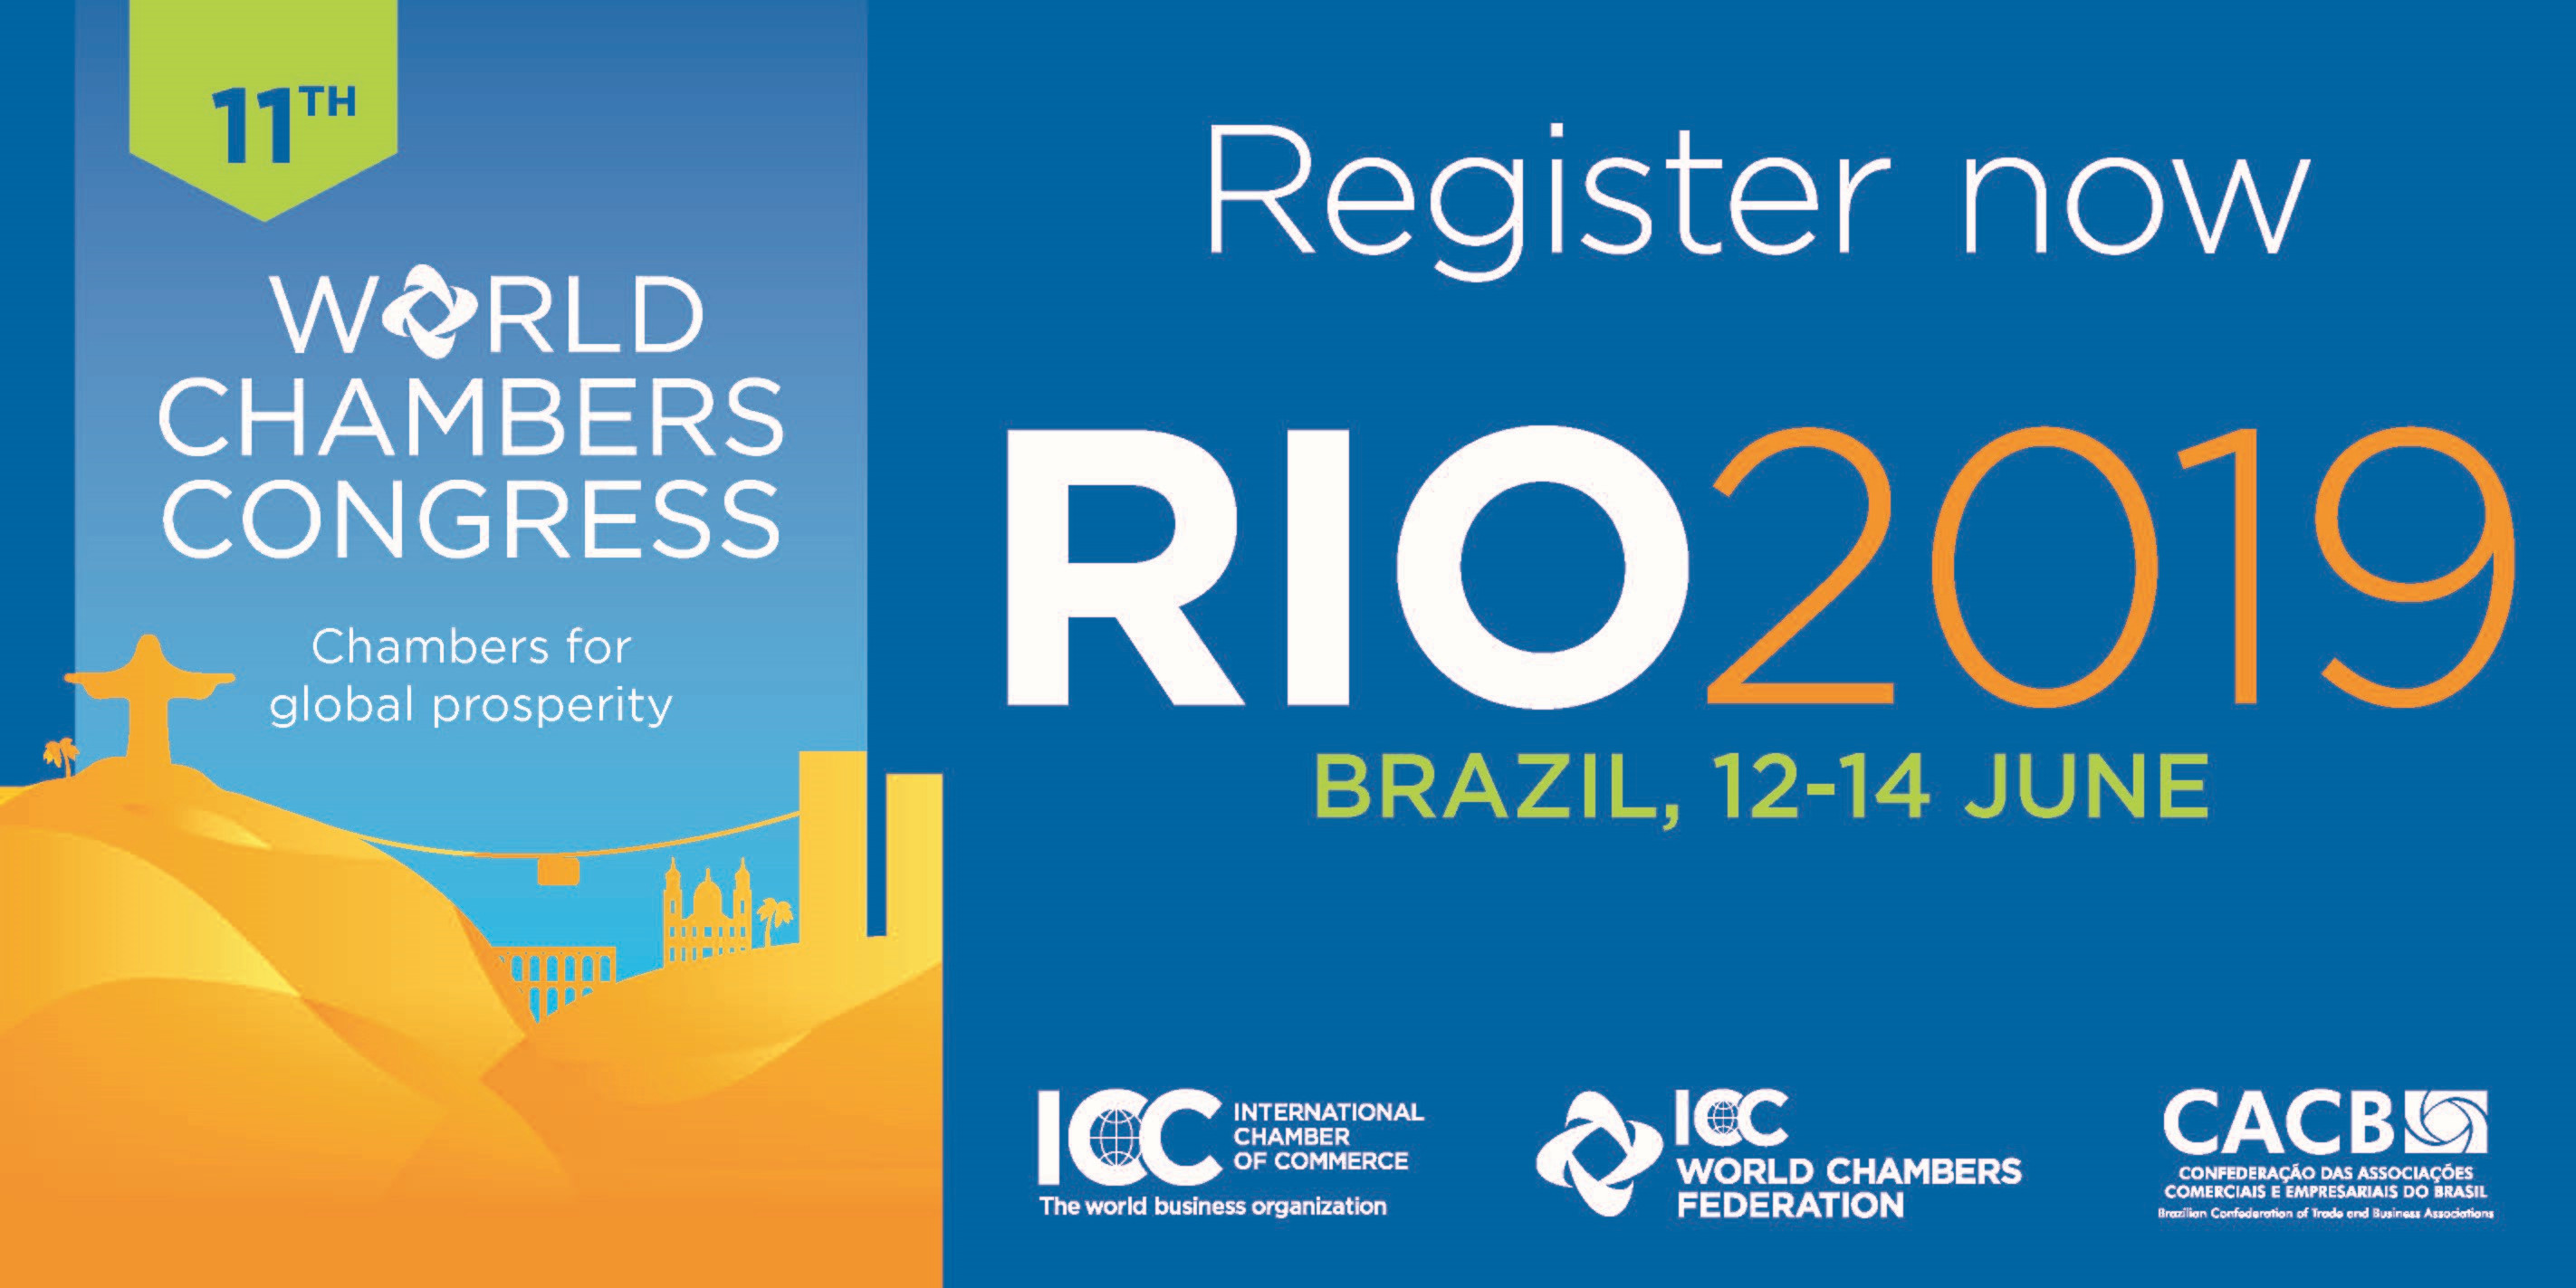 Register Now 11th World Chambers Congress